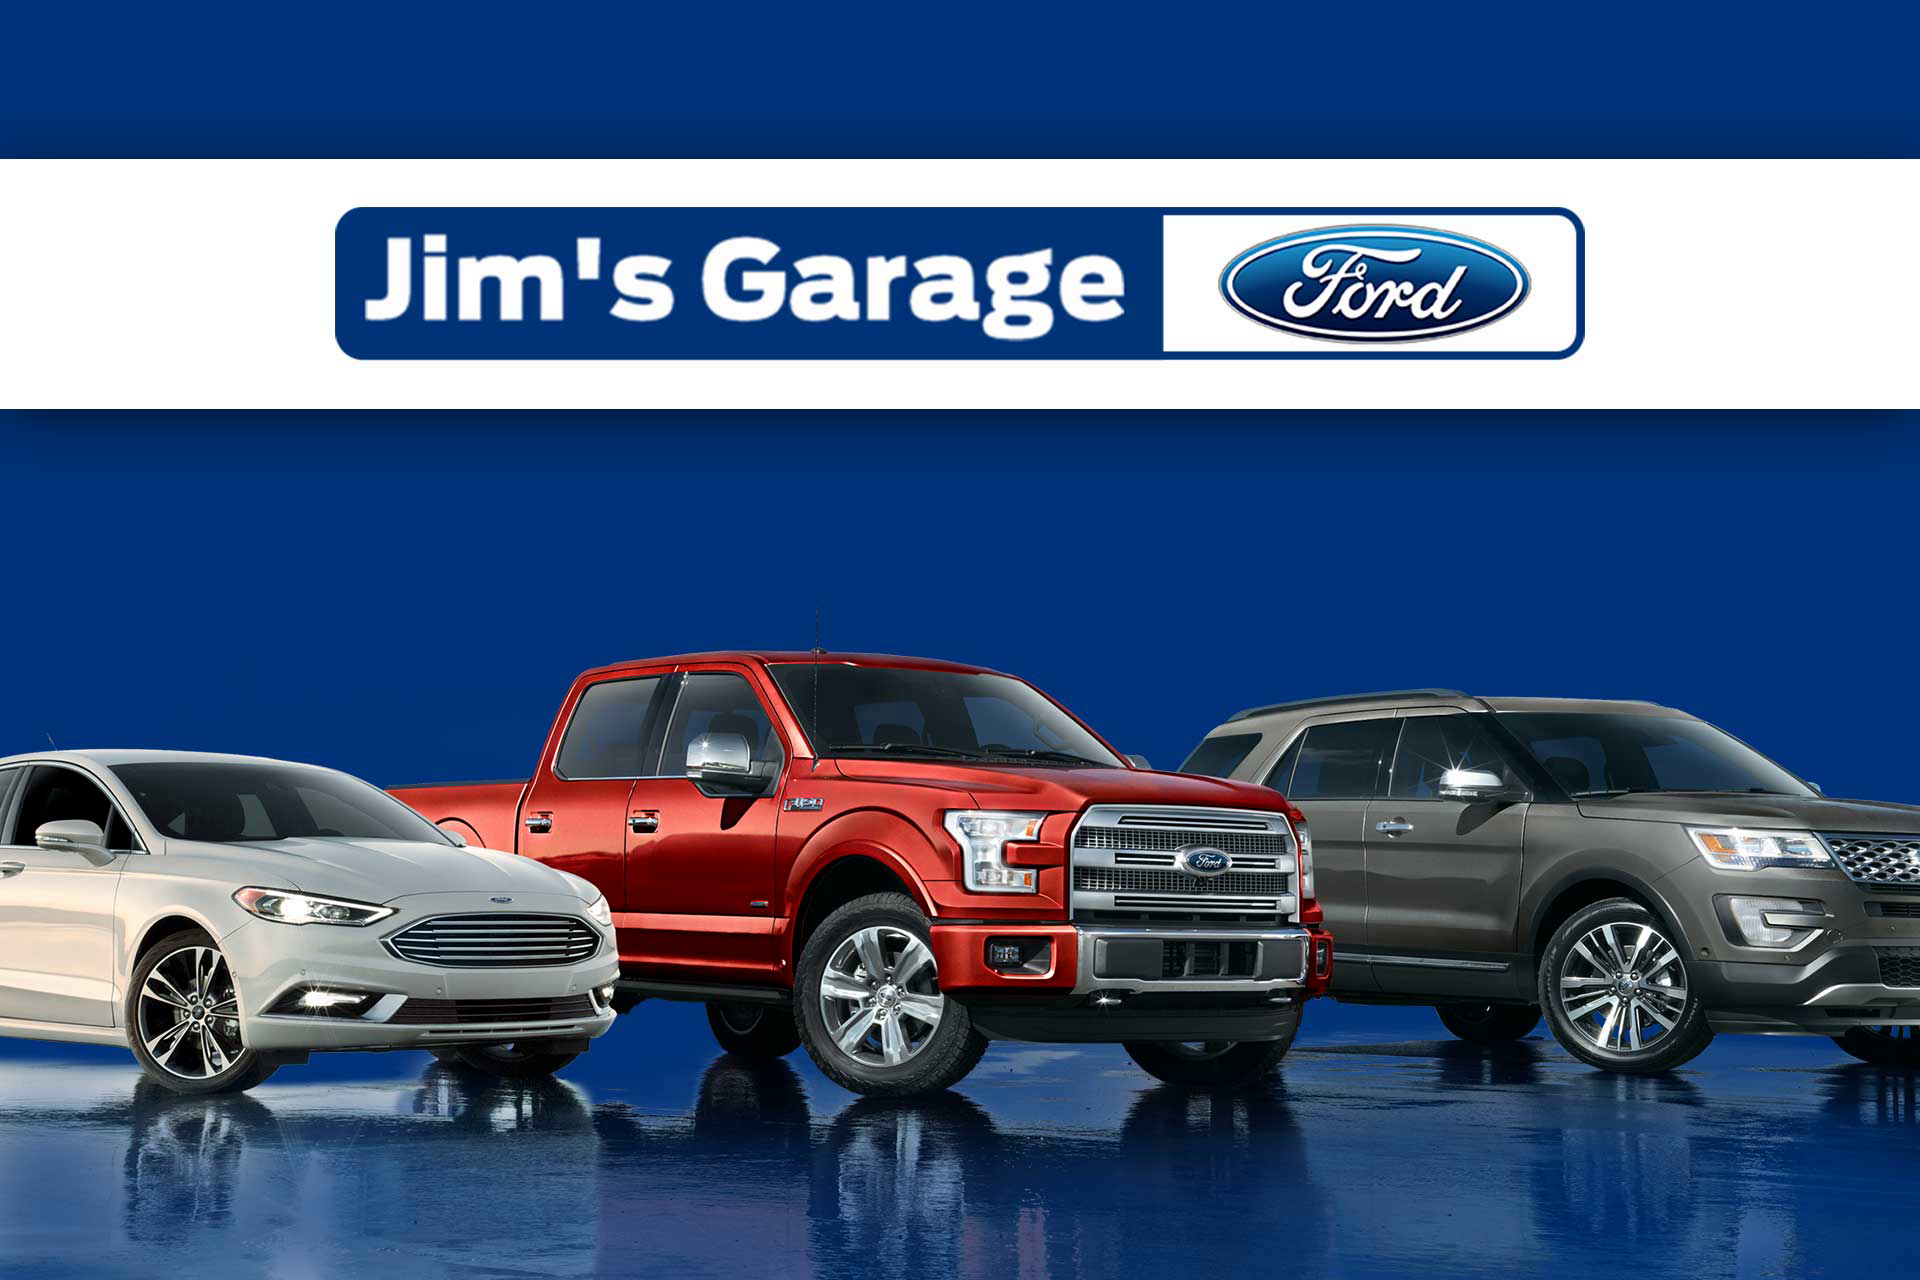 Blue car theme| Ford| Luxury vehicles| Blue & grey| Website Design & Development mockup| Jims Garage| Get Solutions